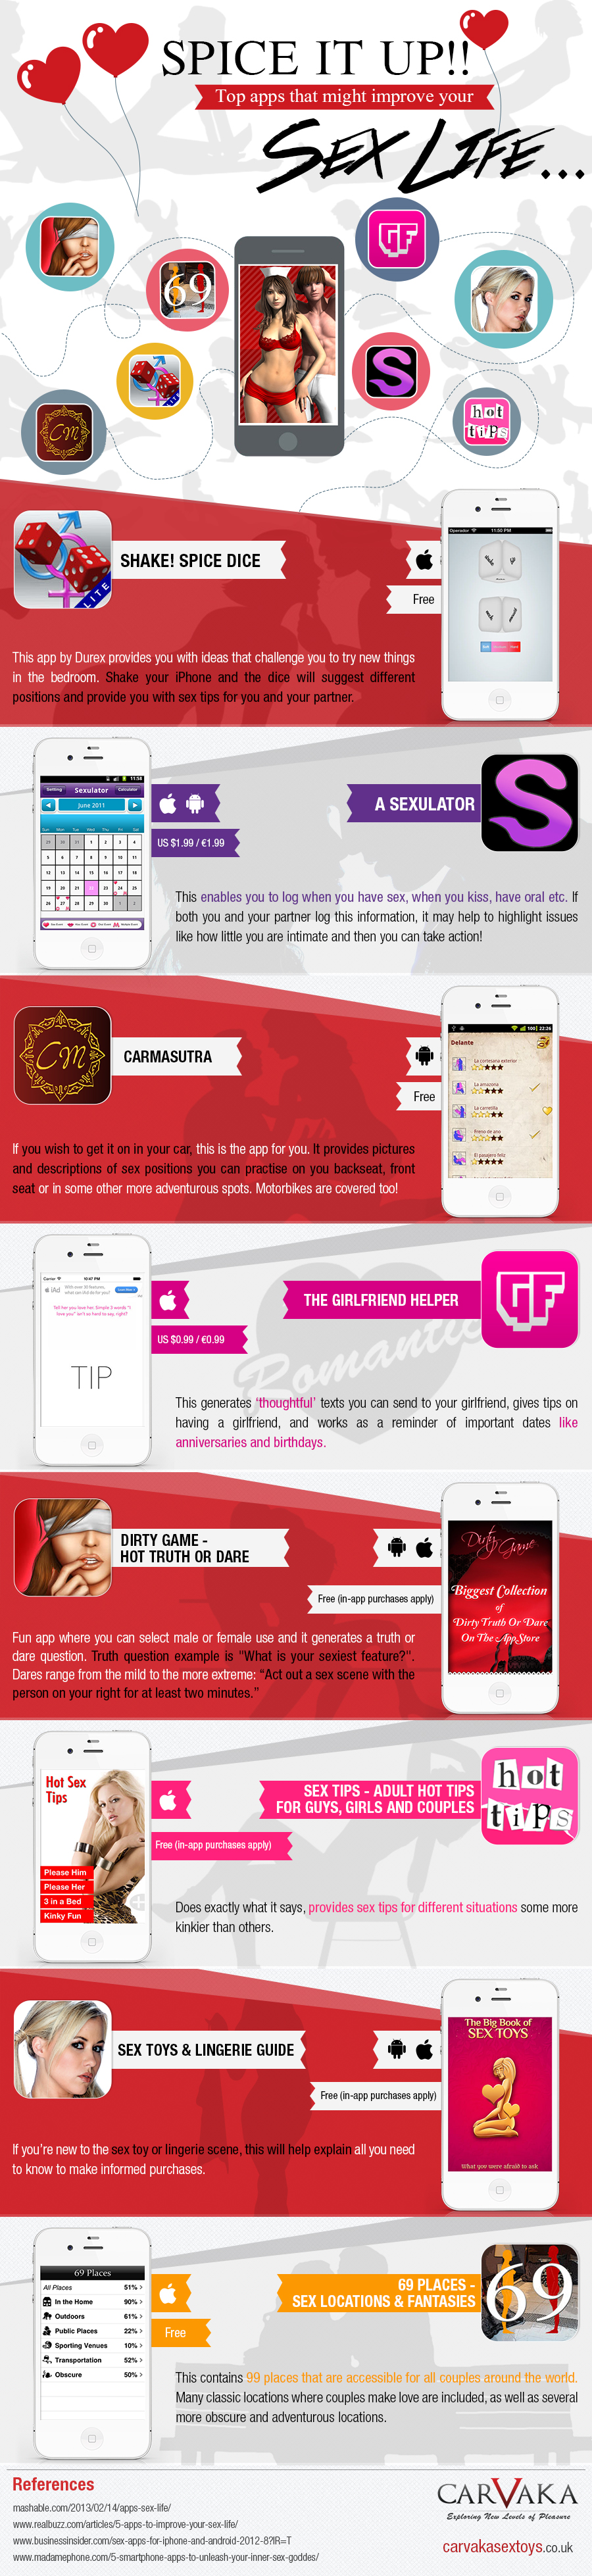 Apps to Improve Your Love Life! – An Infographic